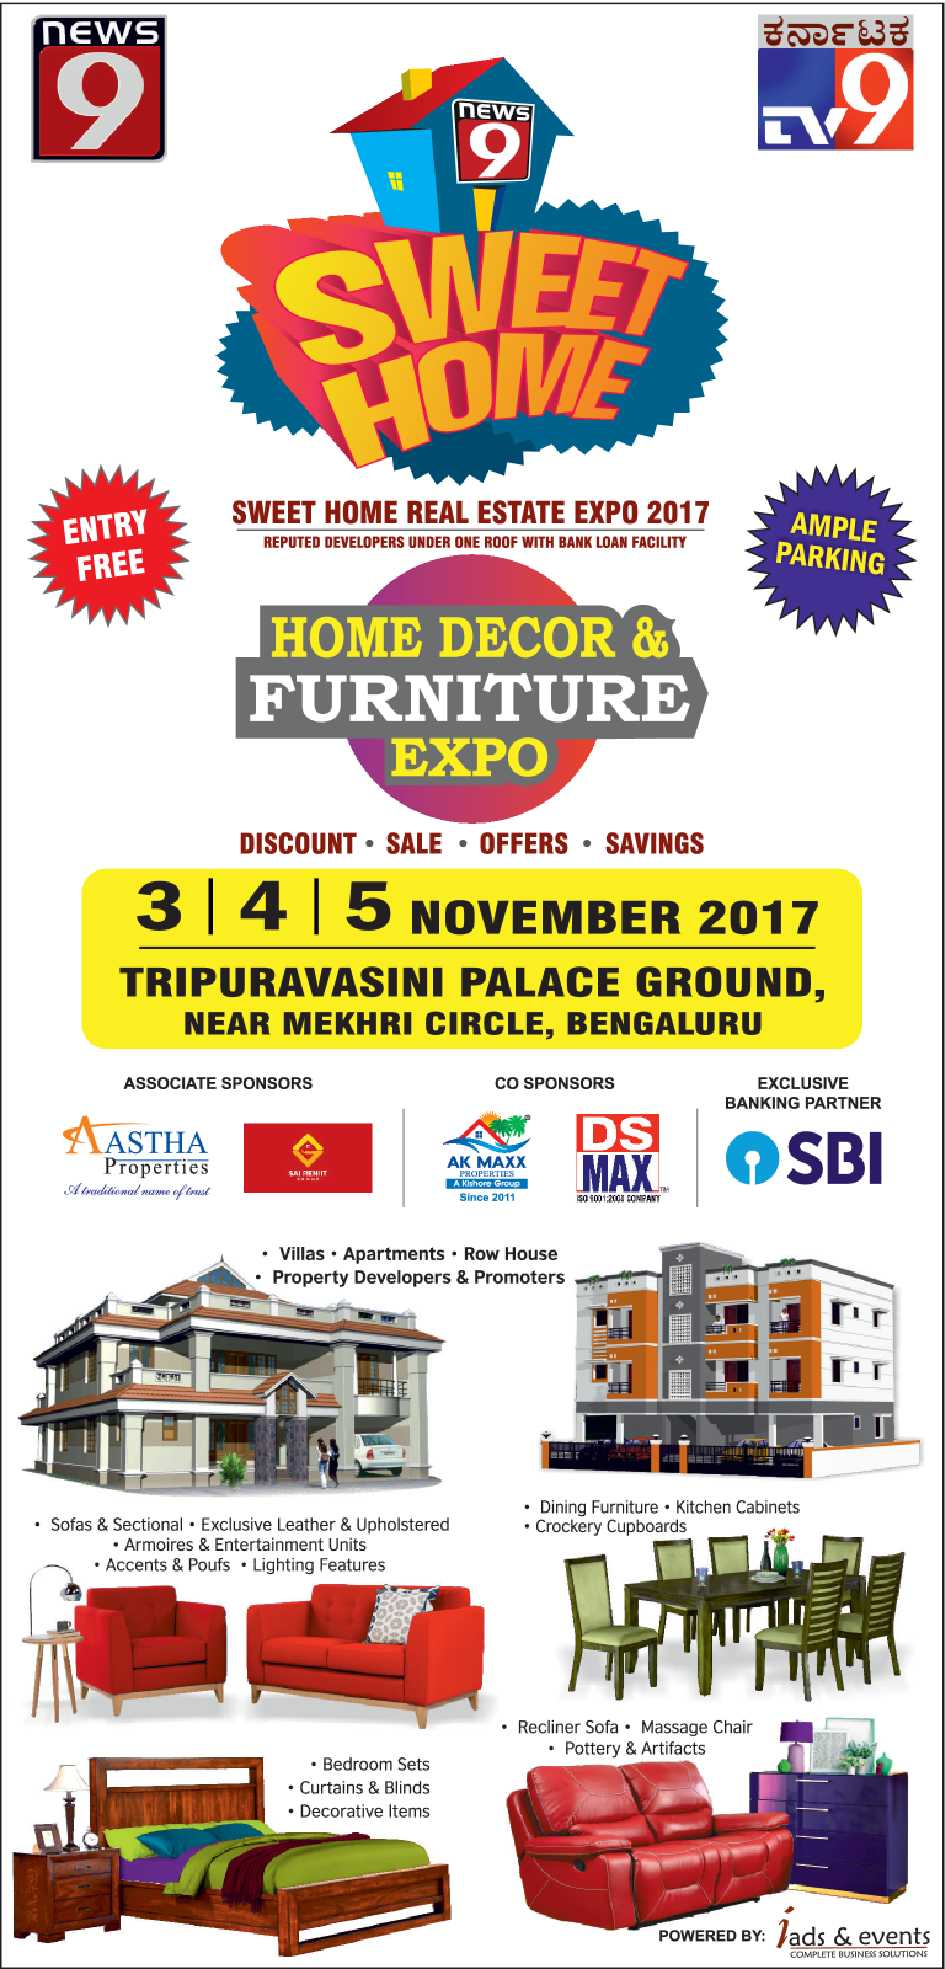 Sweet Home Home Decor And Furniture Expo Ad Advert Gallery